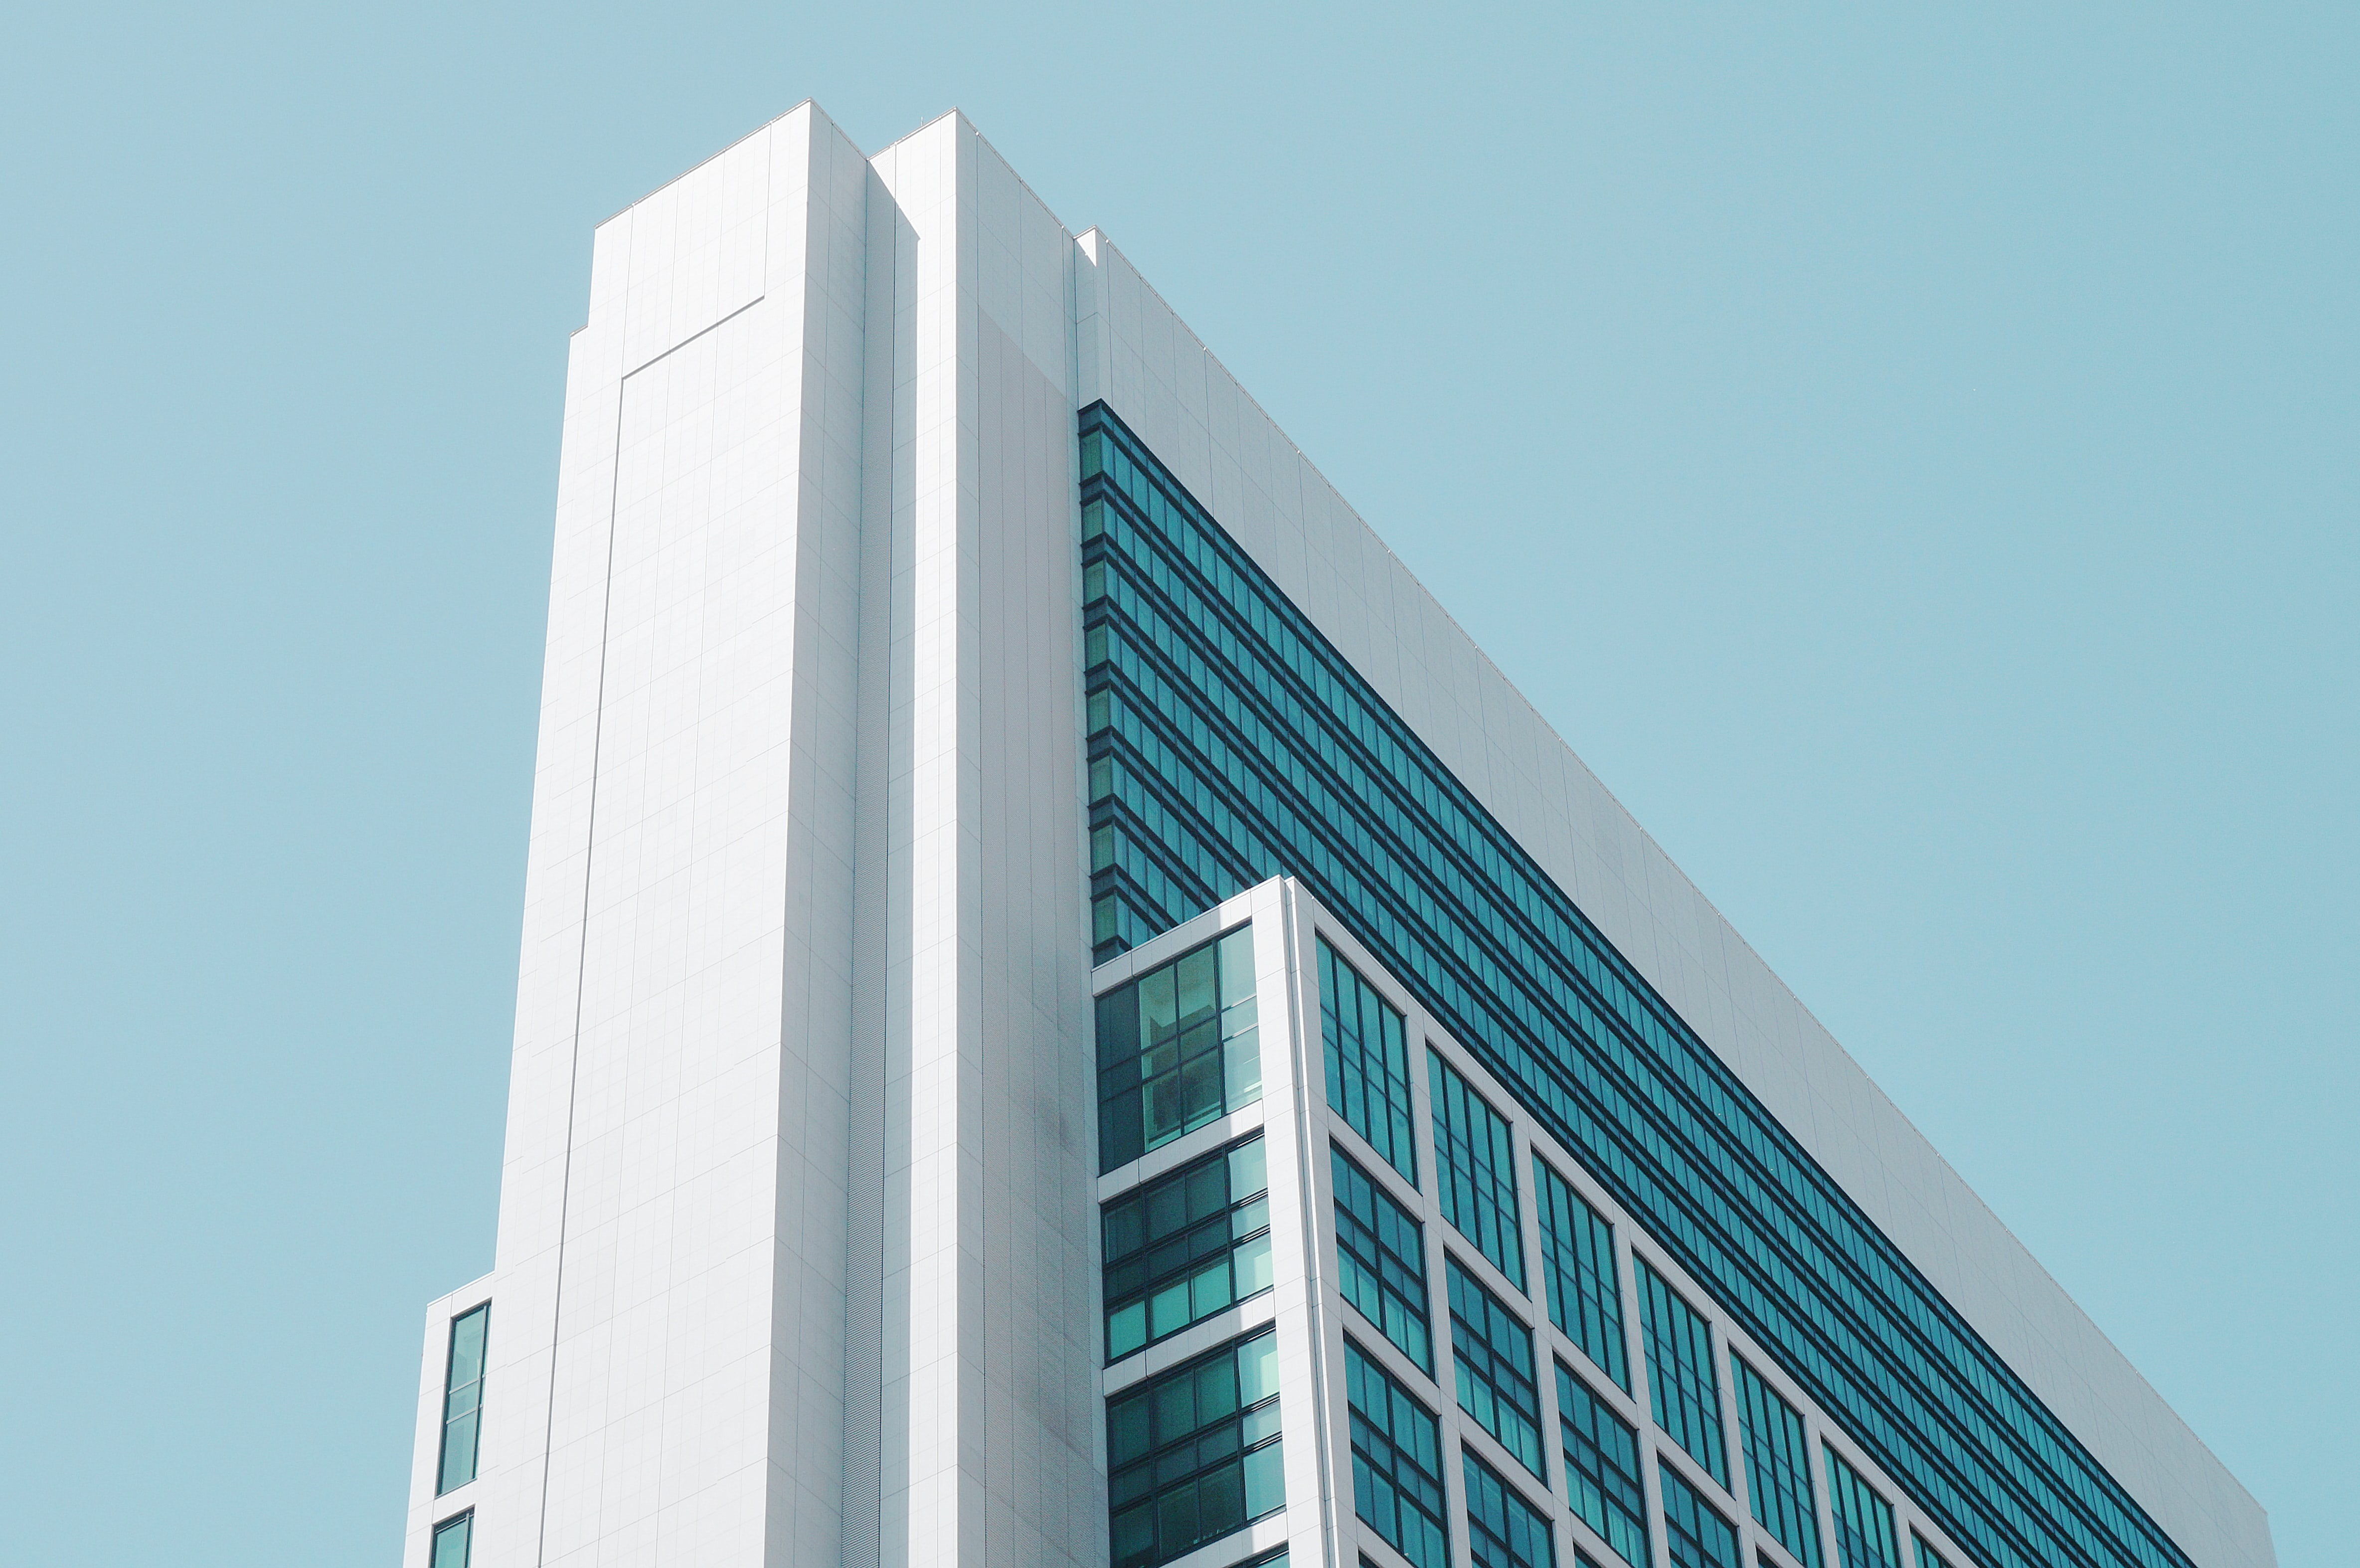 100+ Architecture Pictures | Download Free Images on Unsplash